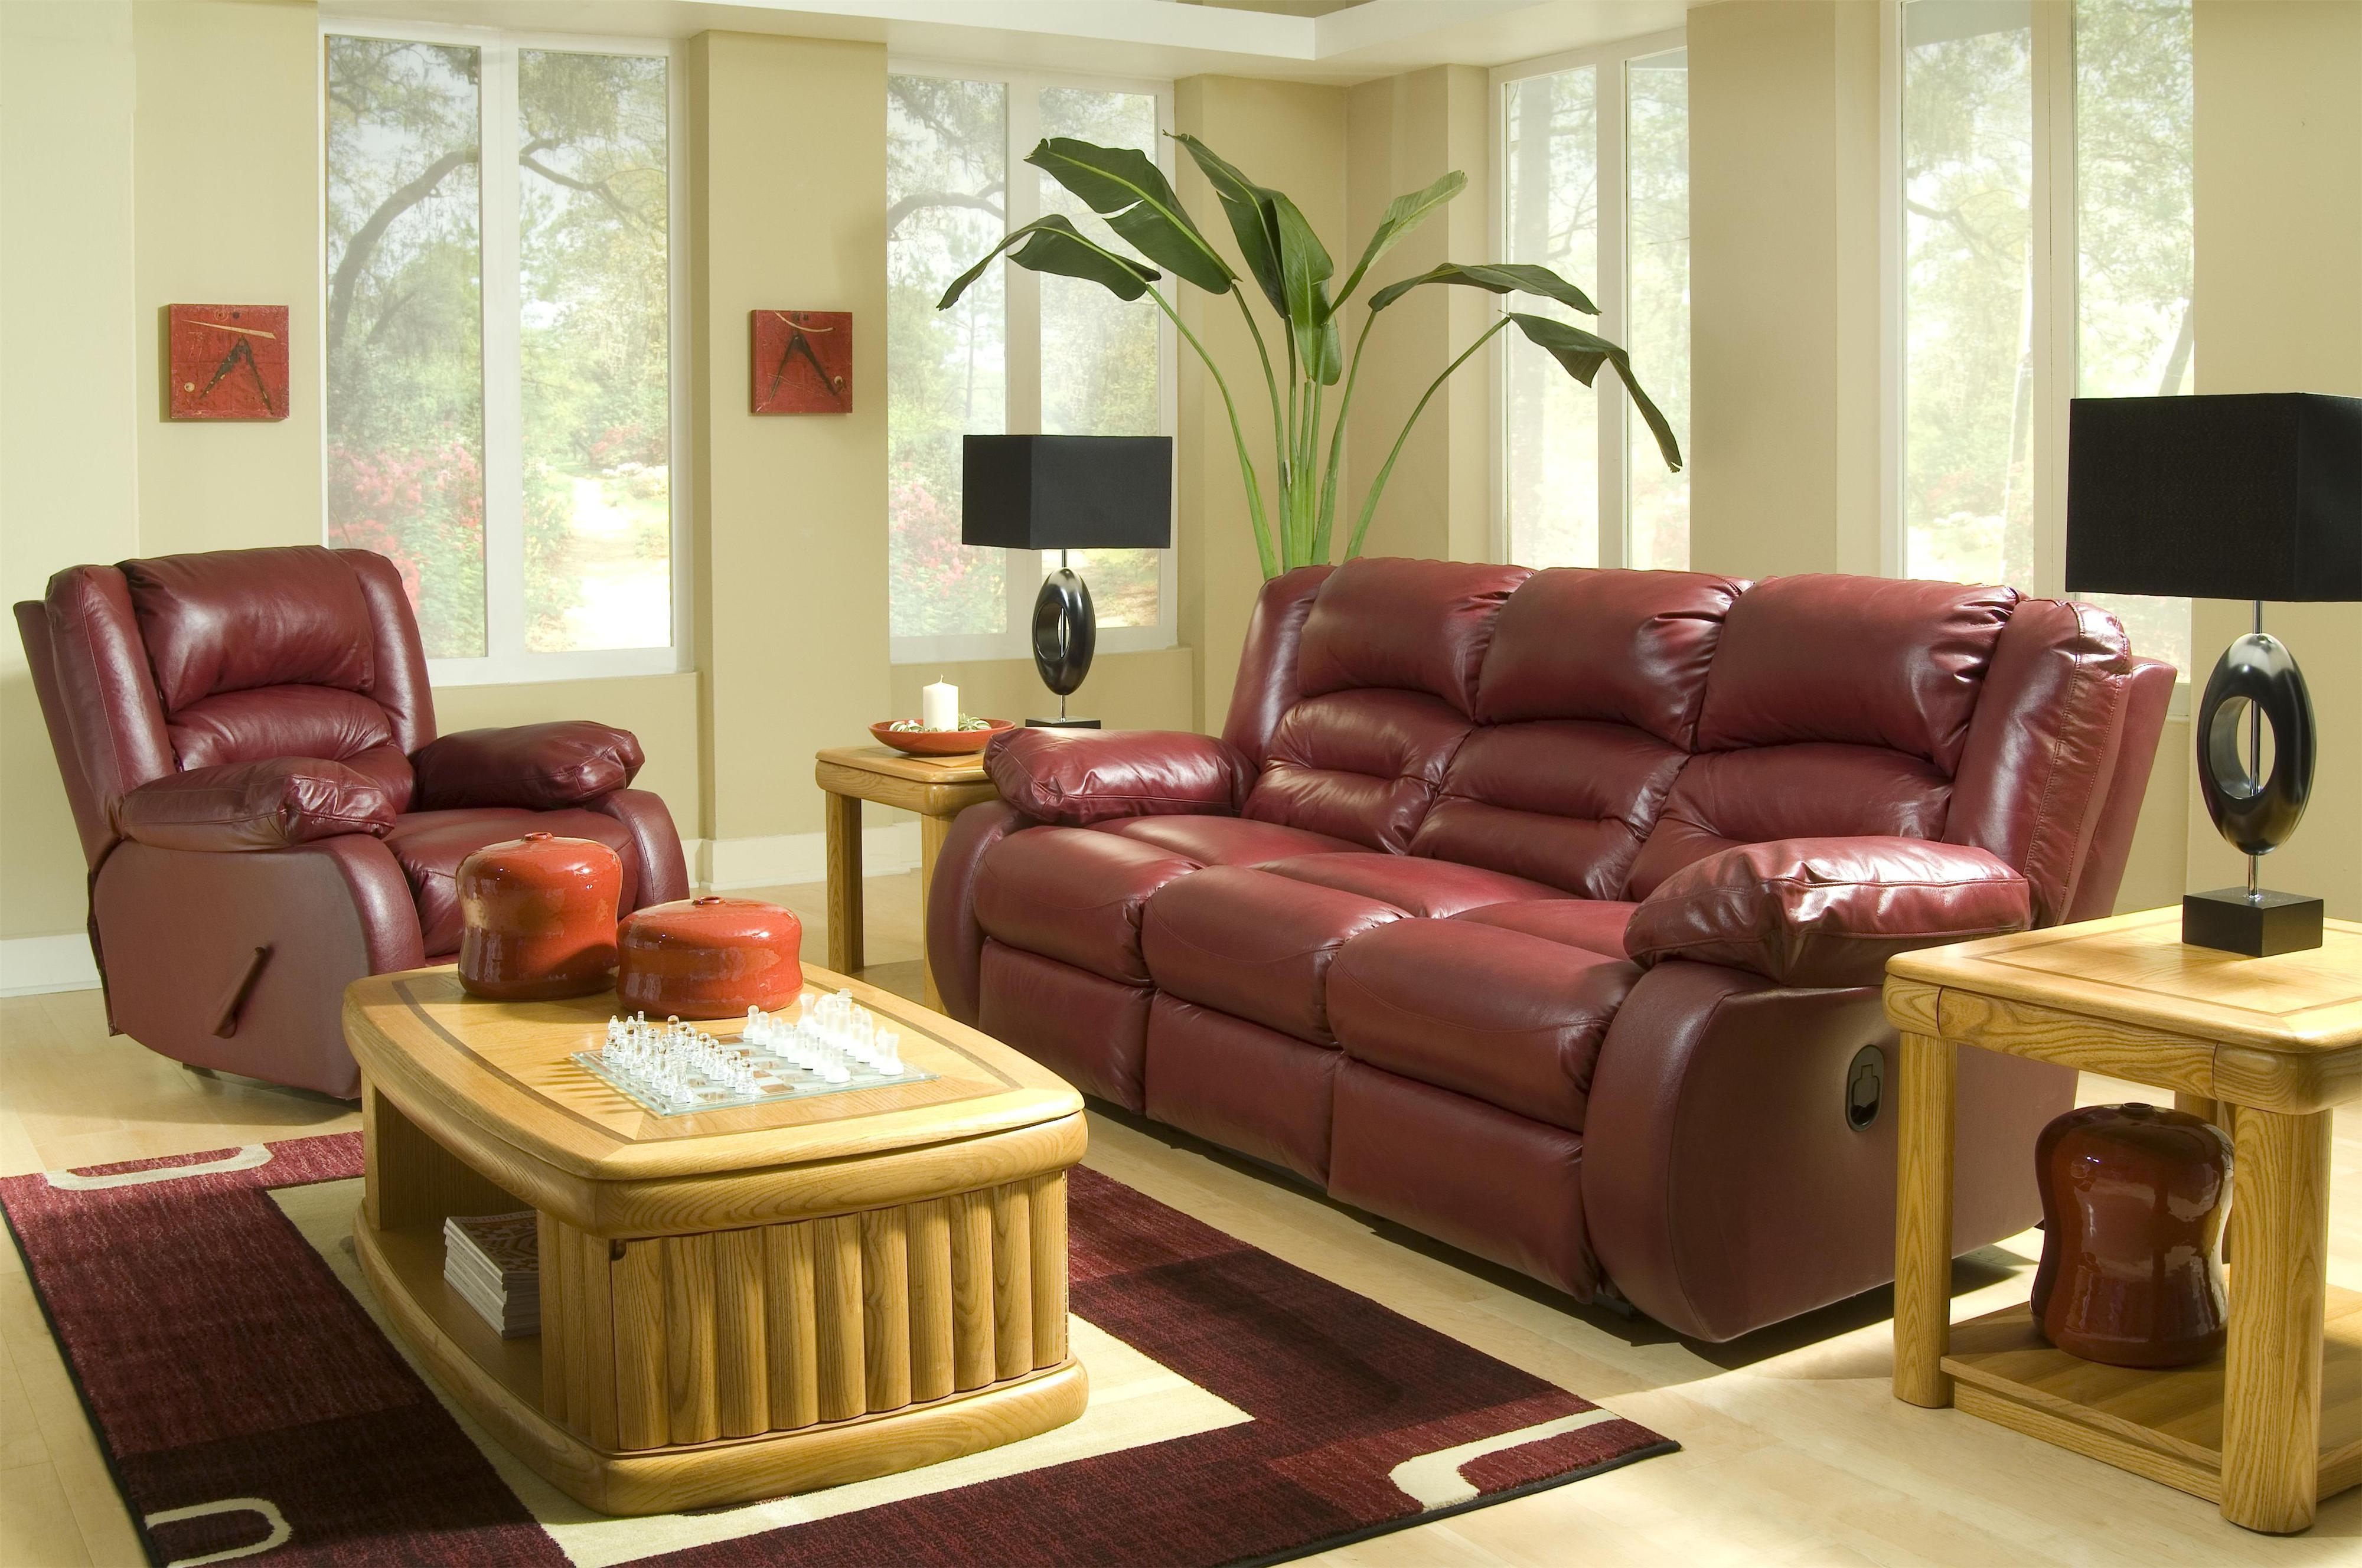 Klaussner Austin Reclining Living Room Group - Item Number: L335 Living Room Group 1